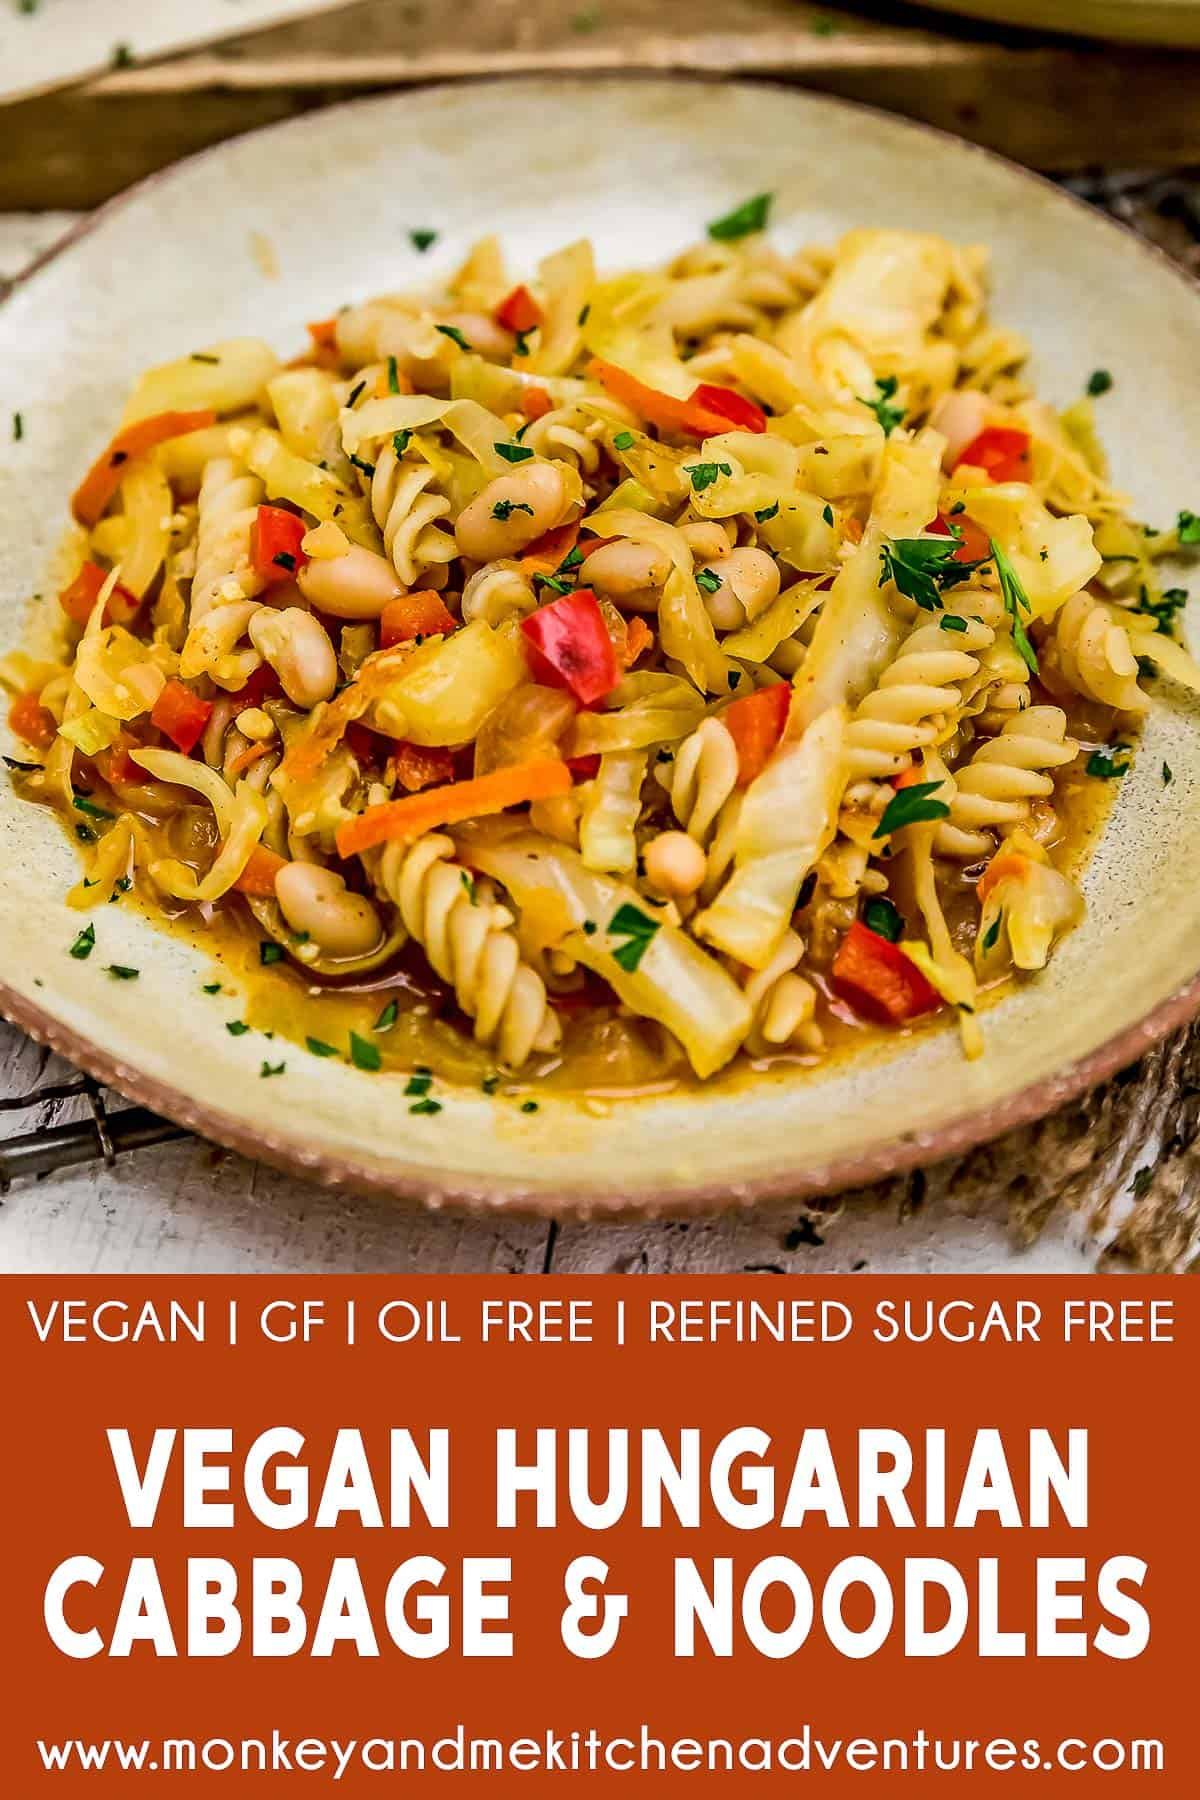 Vegan Hungarian Cabbage and Noodles with text description